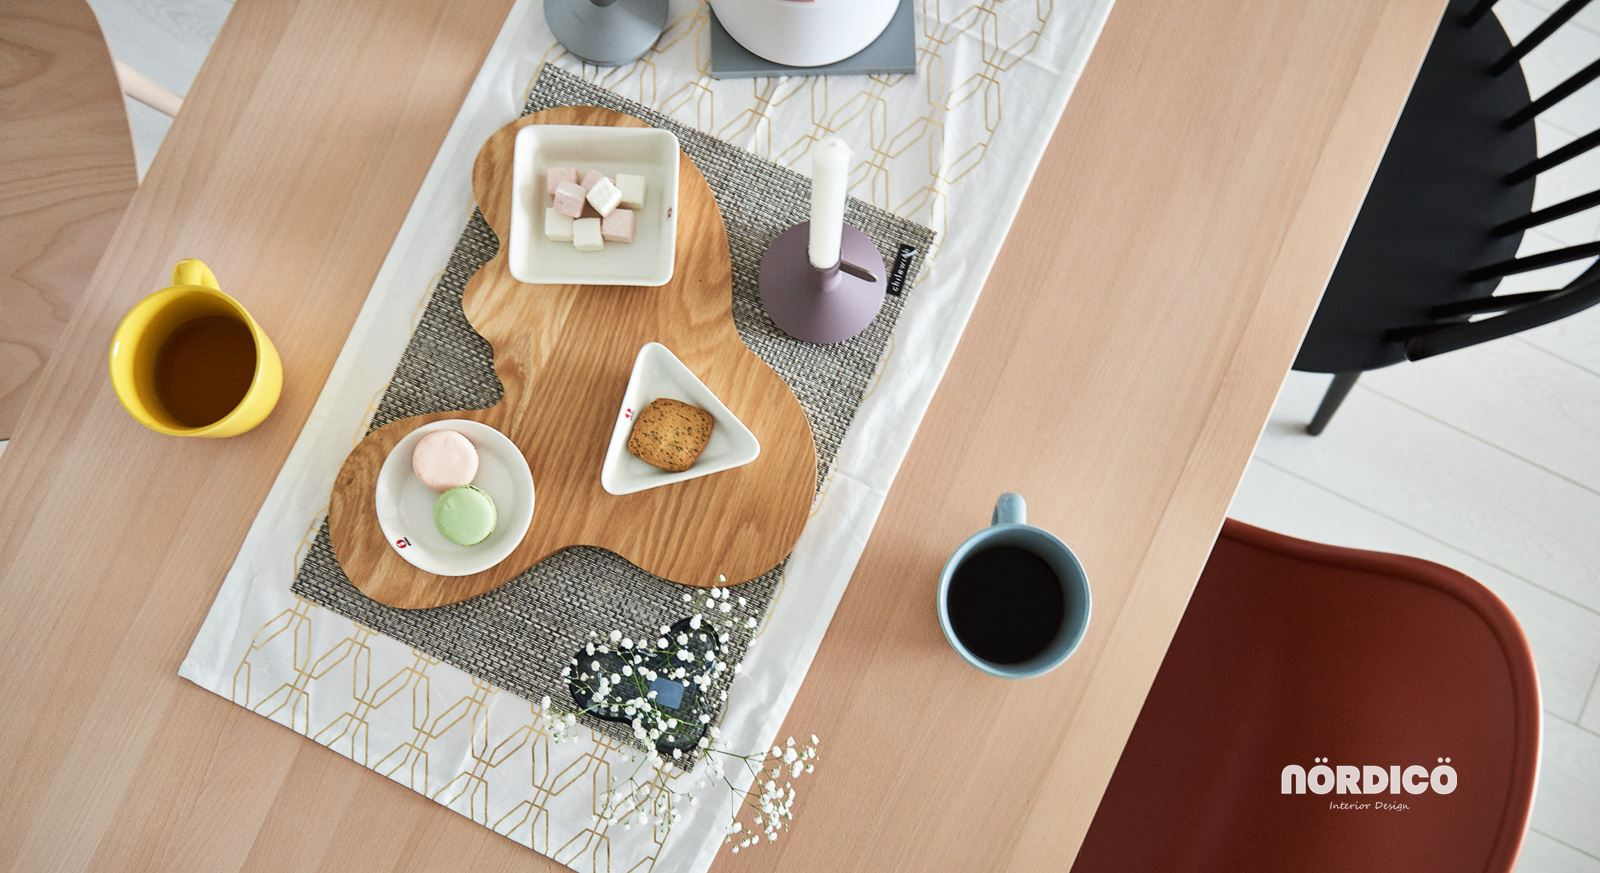 Nordic Tableware Ideas - Nordic decor inspiration in two colorful homes